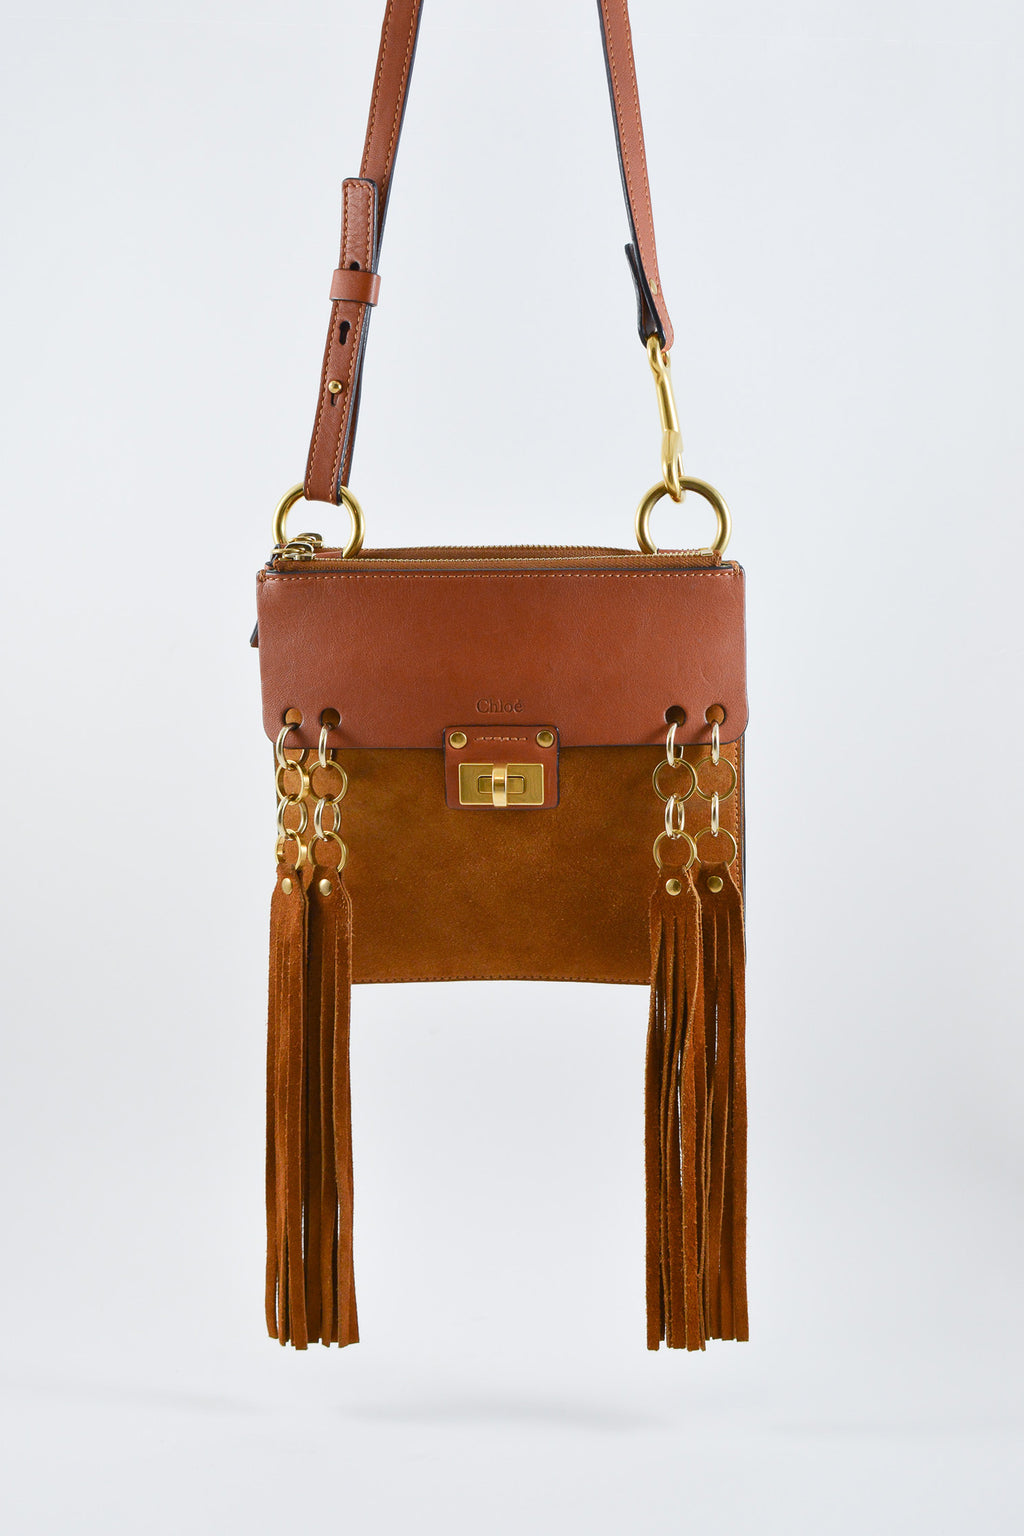 ChloéBrown Jane Leather and Suede Tassel Crossbody